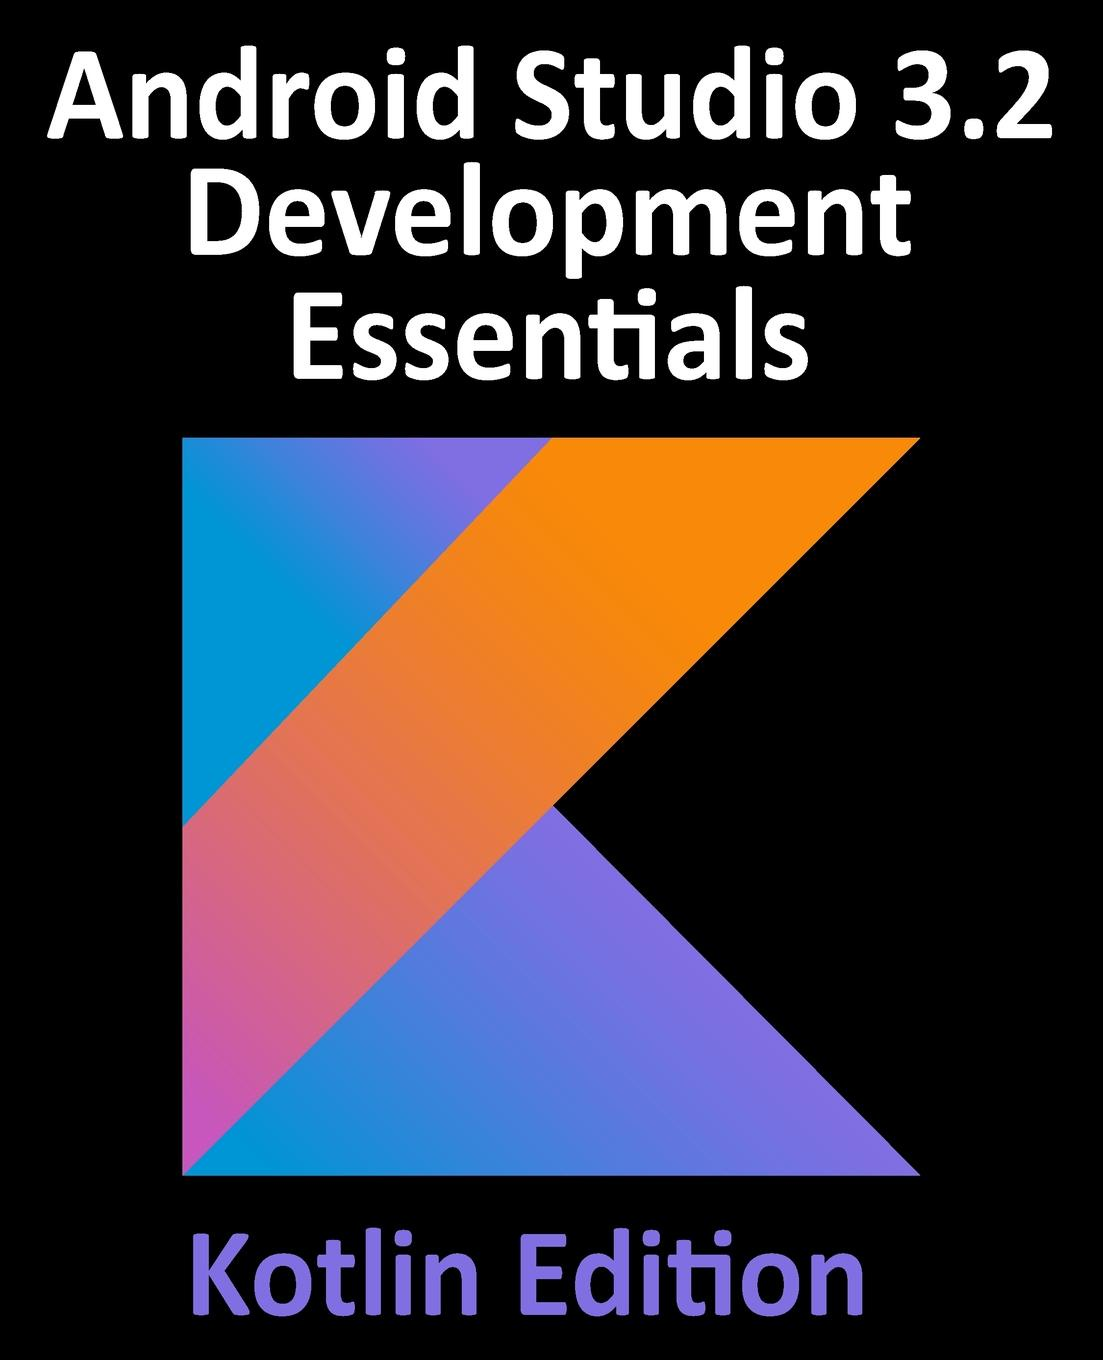 Neil Smyth Android Studio 3.2 Development Essentials - Kotlin Edition. Developing Android 9 Apps Using Android Studio 3.2, Kotlin and Android Jetpack gl 8902w wifi backup camera car wireless rear view apply ios and android apps